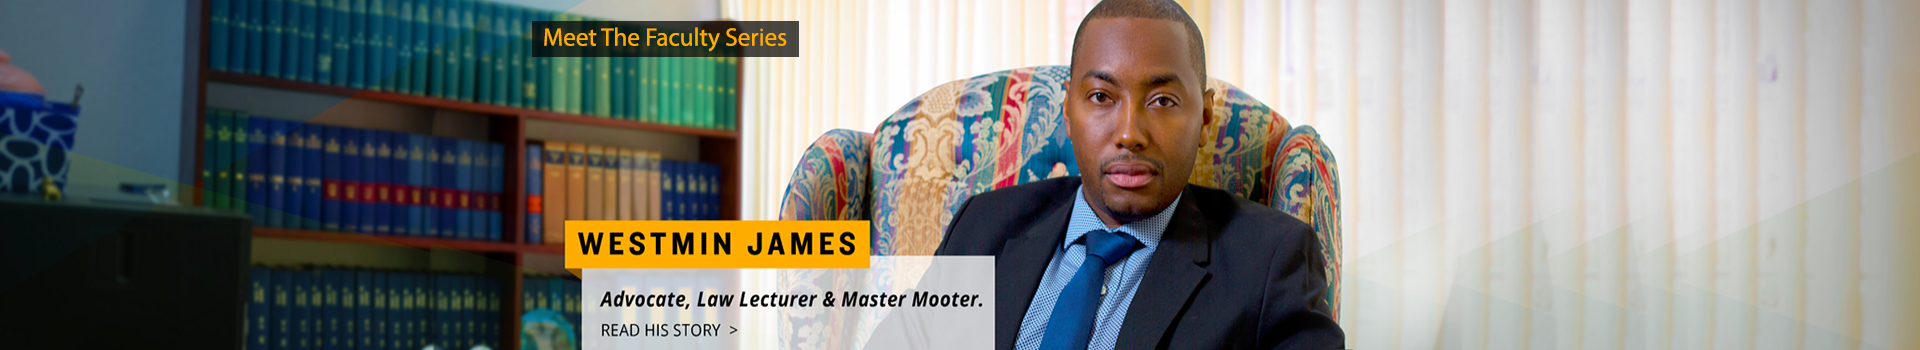 Meet the Faculty Series: Mr. Westmin James